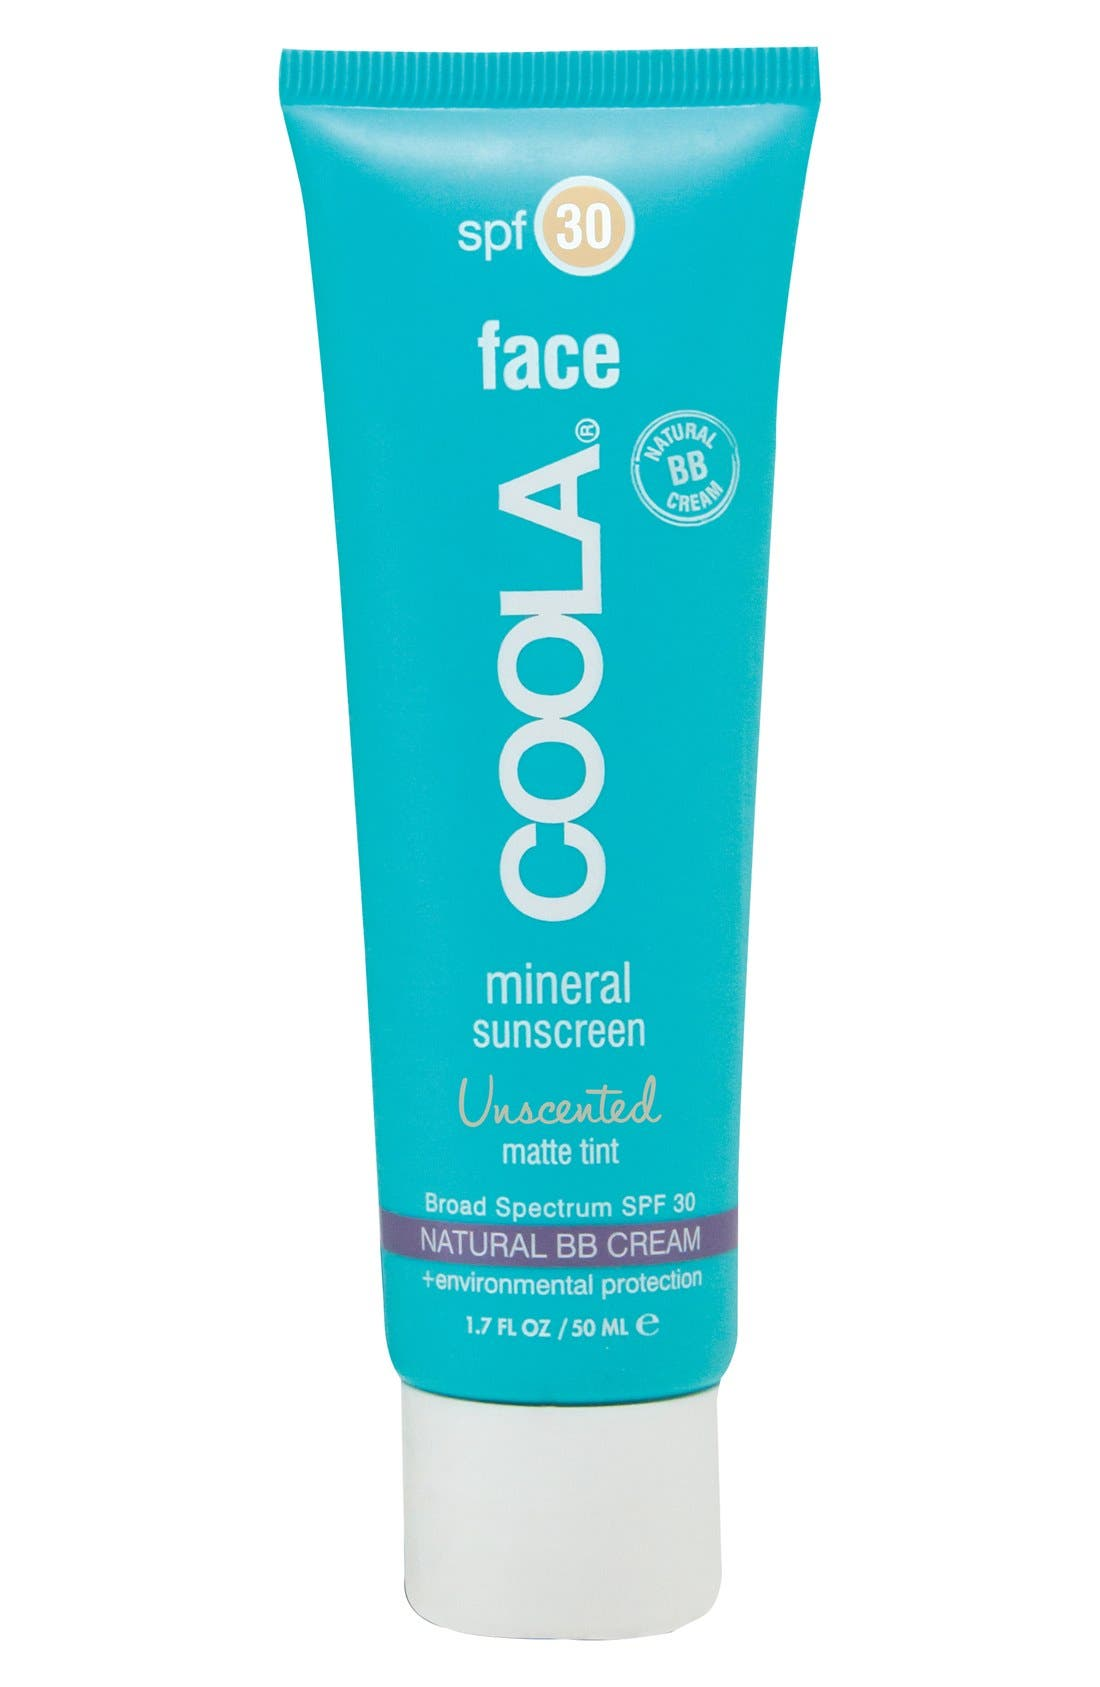 COOLA® Suncare Face Mineral Sunscreen Unscented Matte Tint Broad Spectrum SPF 30